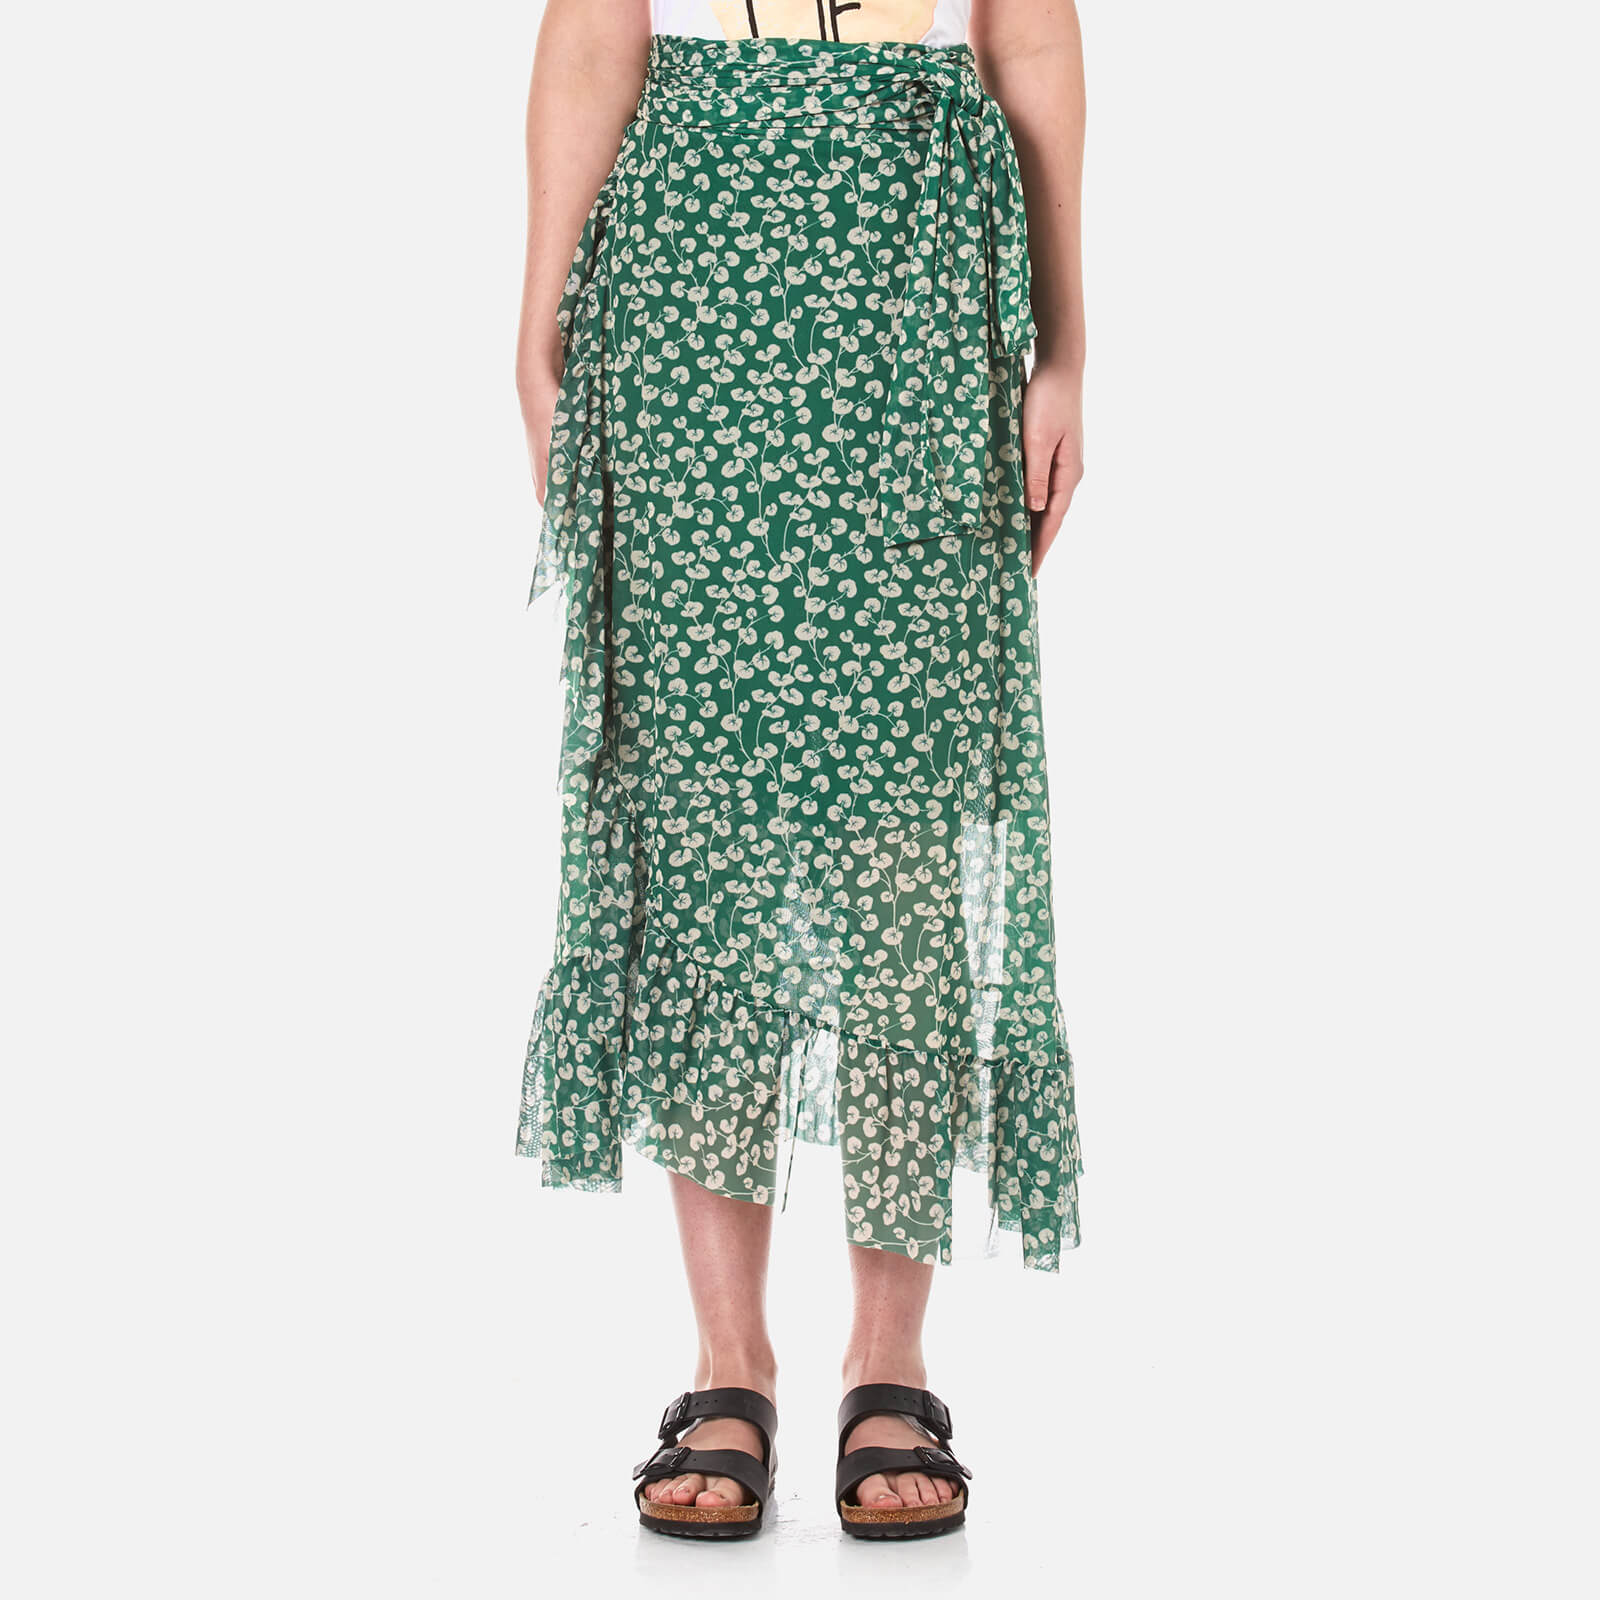 03d60bf7f2b Ganni Women's Capilla Mesh Maxi Skirt - Green - Free UK Delivery over £50